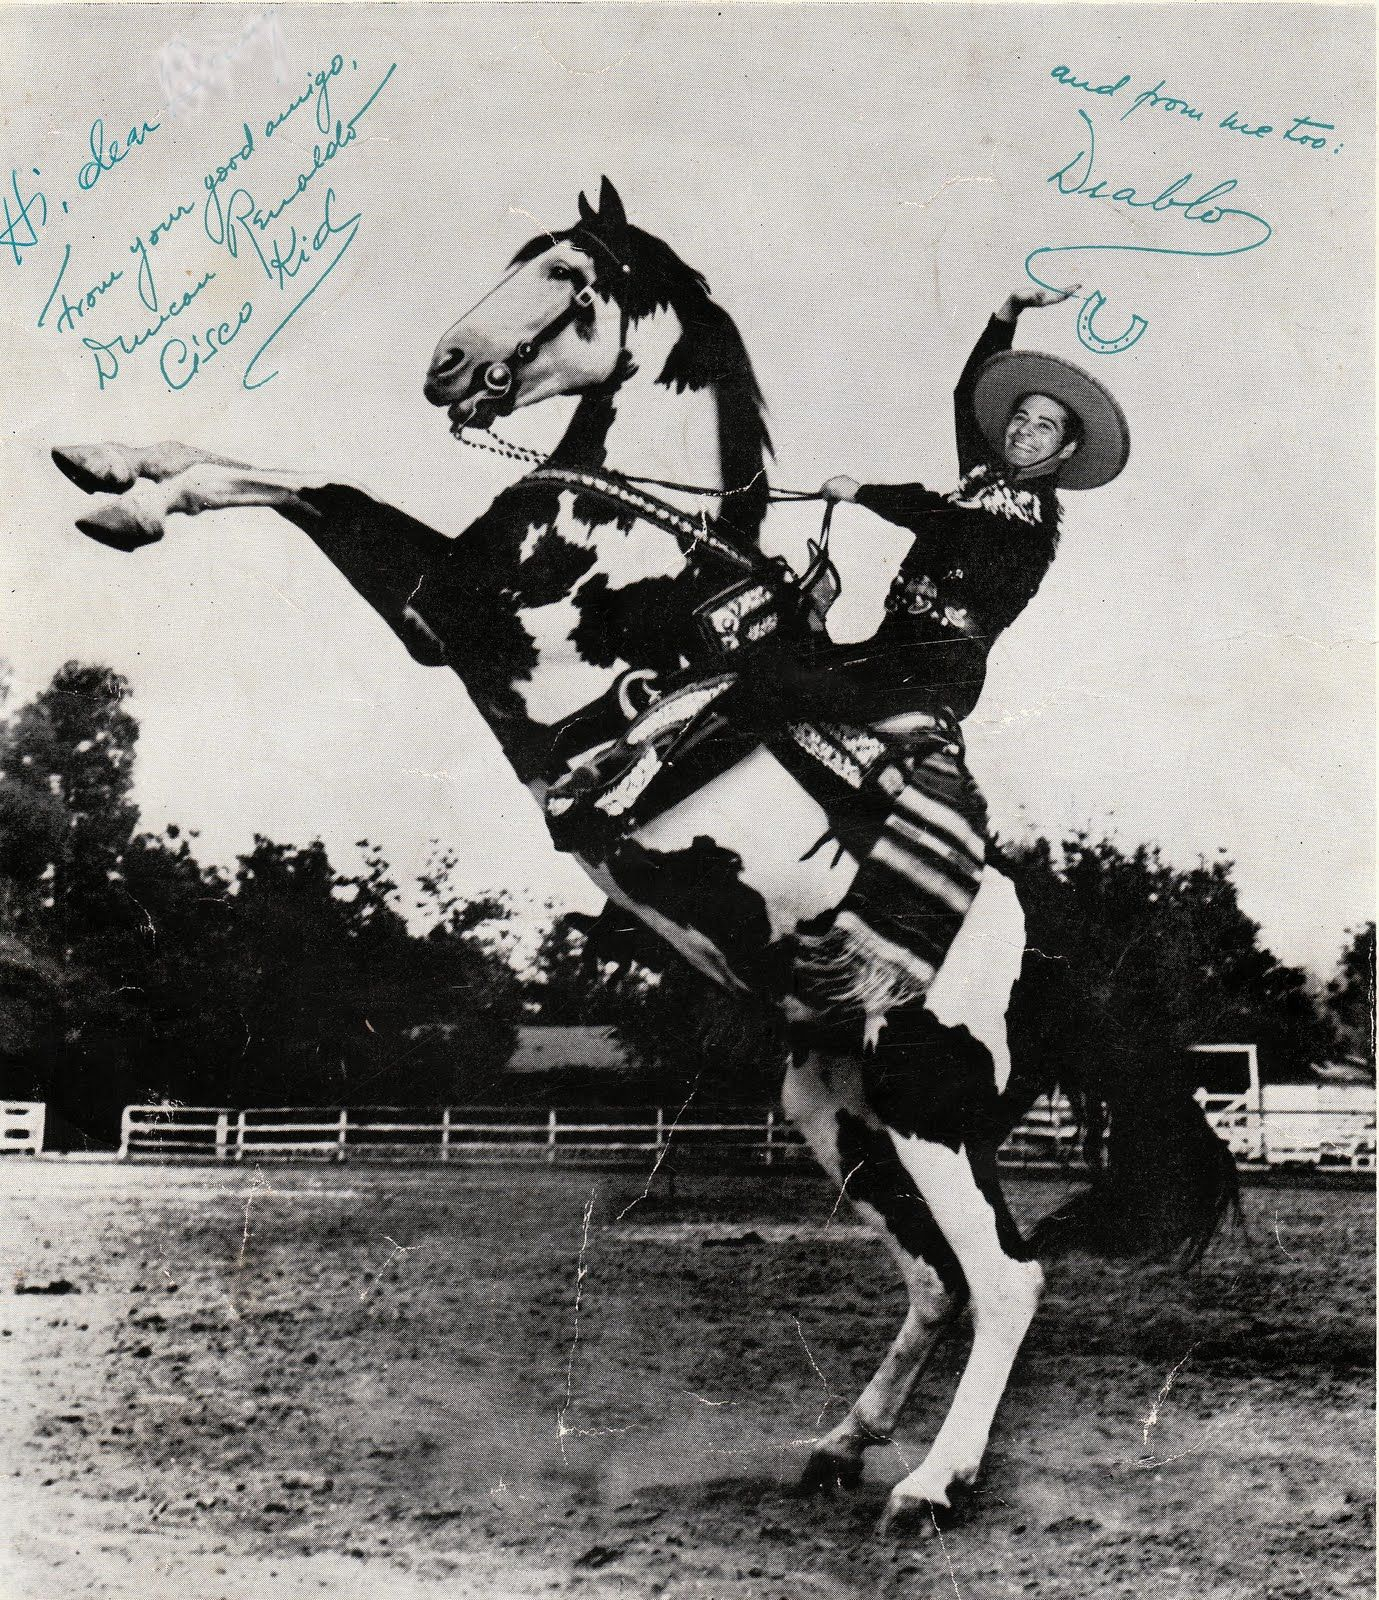 Diablo And The Cisco Kid Anyone Else Notice This Is Not Same Horse As Previous